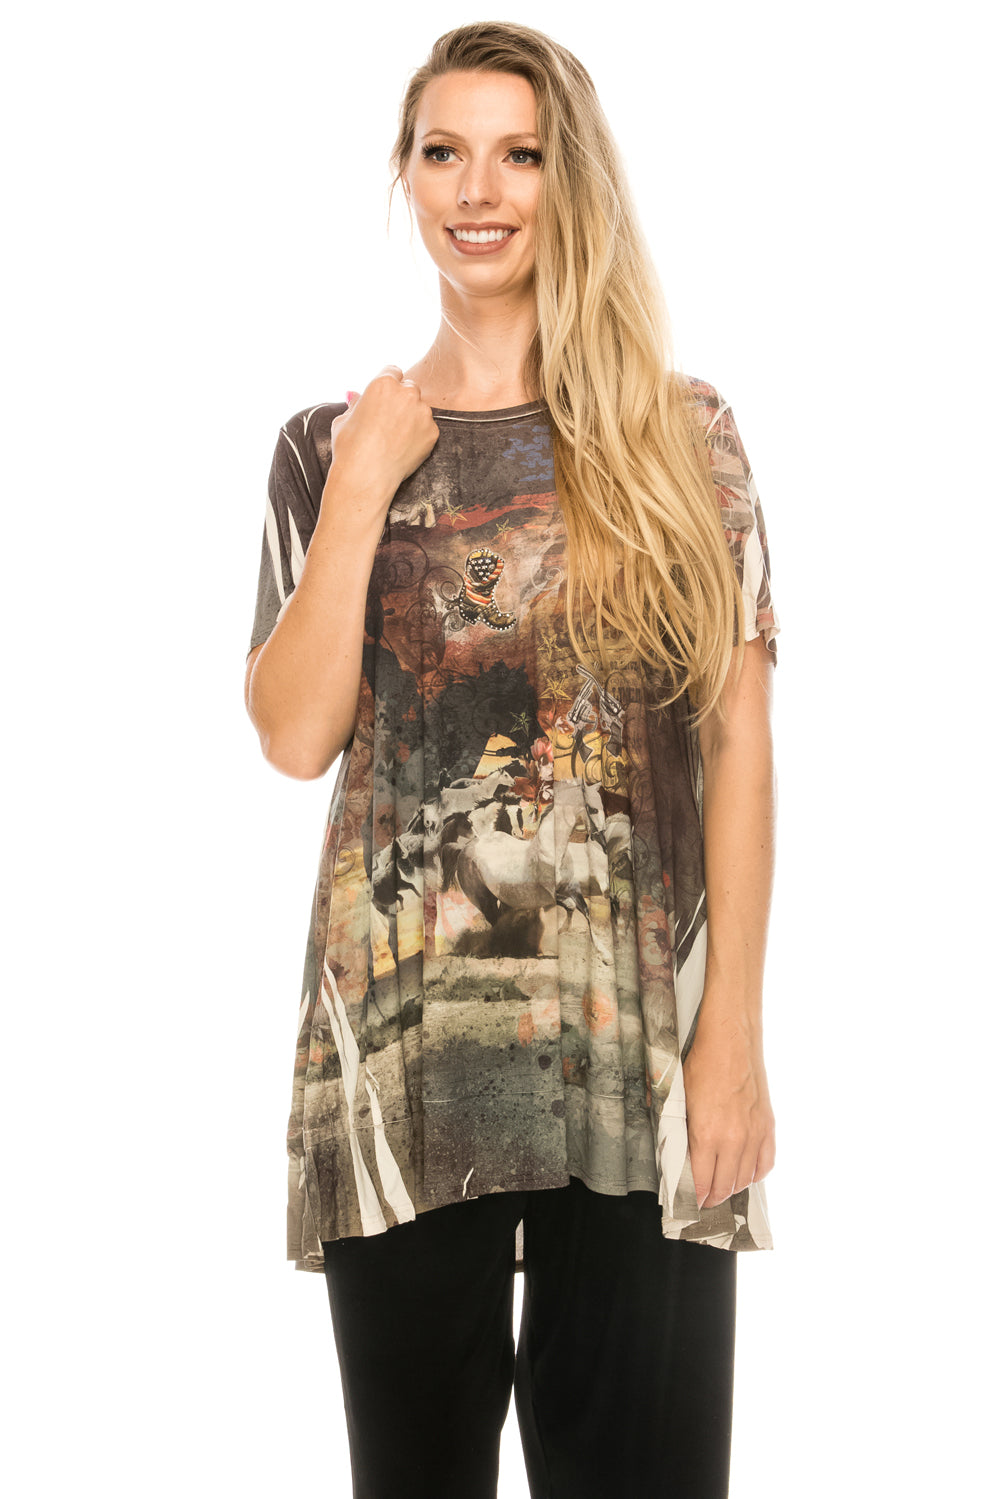 Jostar Women's HIT Slub Bottom Layered Top Short Sleeve Sublimation Rhinestone, 326HT-SU-R-U172 - Jostar Online